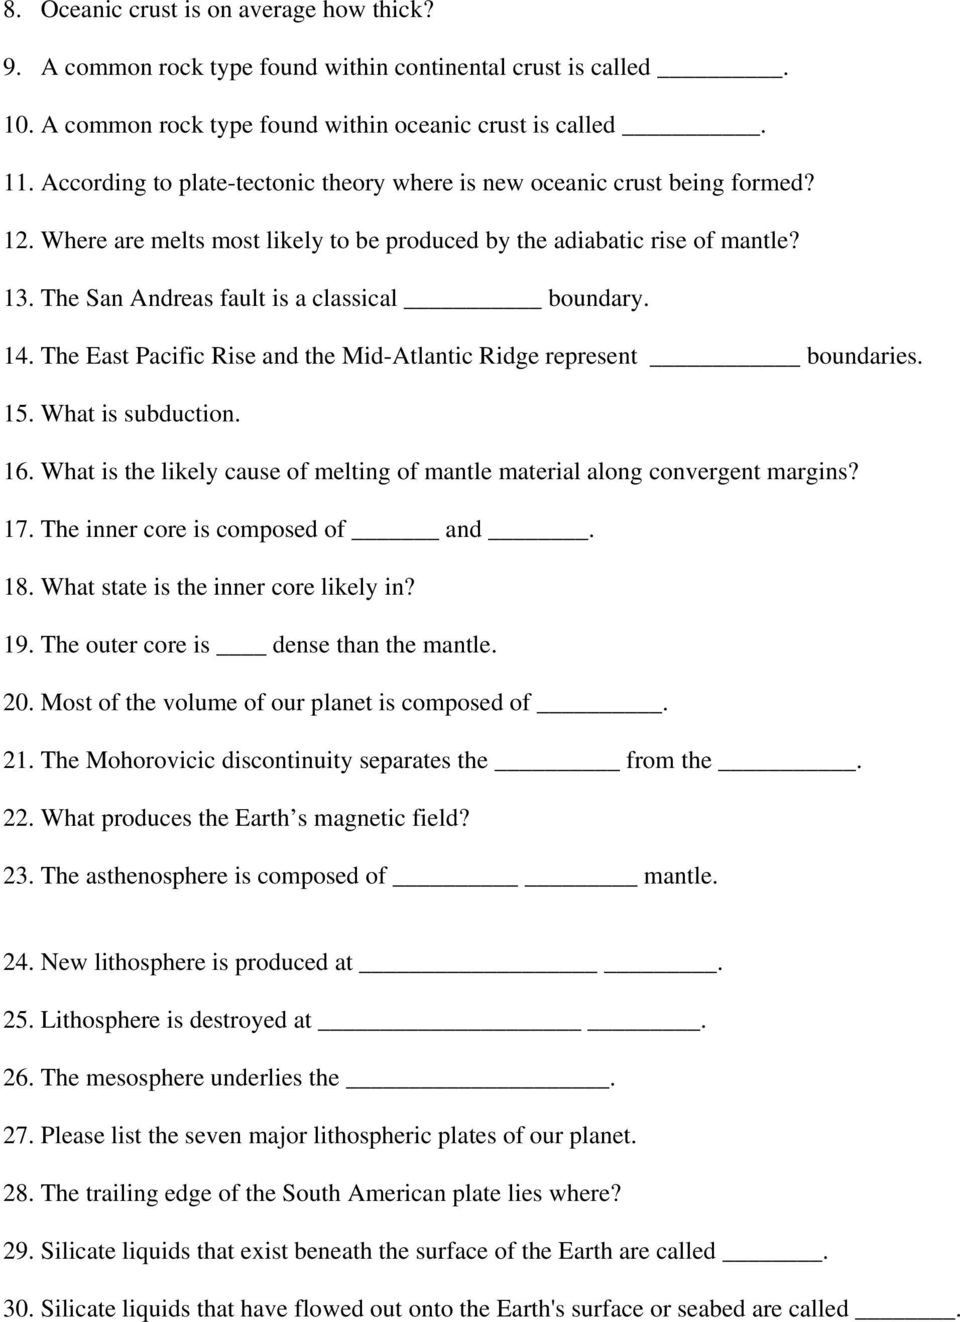 Plate Tectonics Worksheet 6th Grade Plate Tectonics Practice Questions and Answers Revised